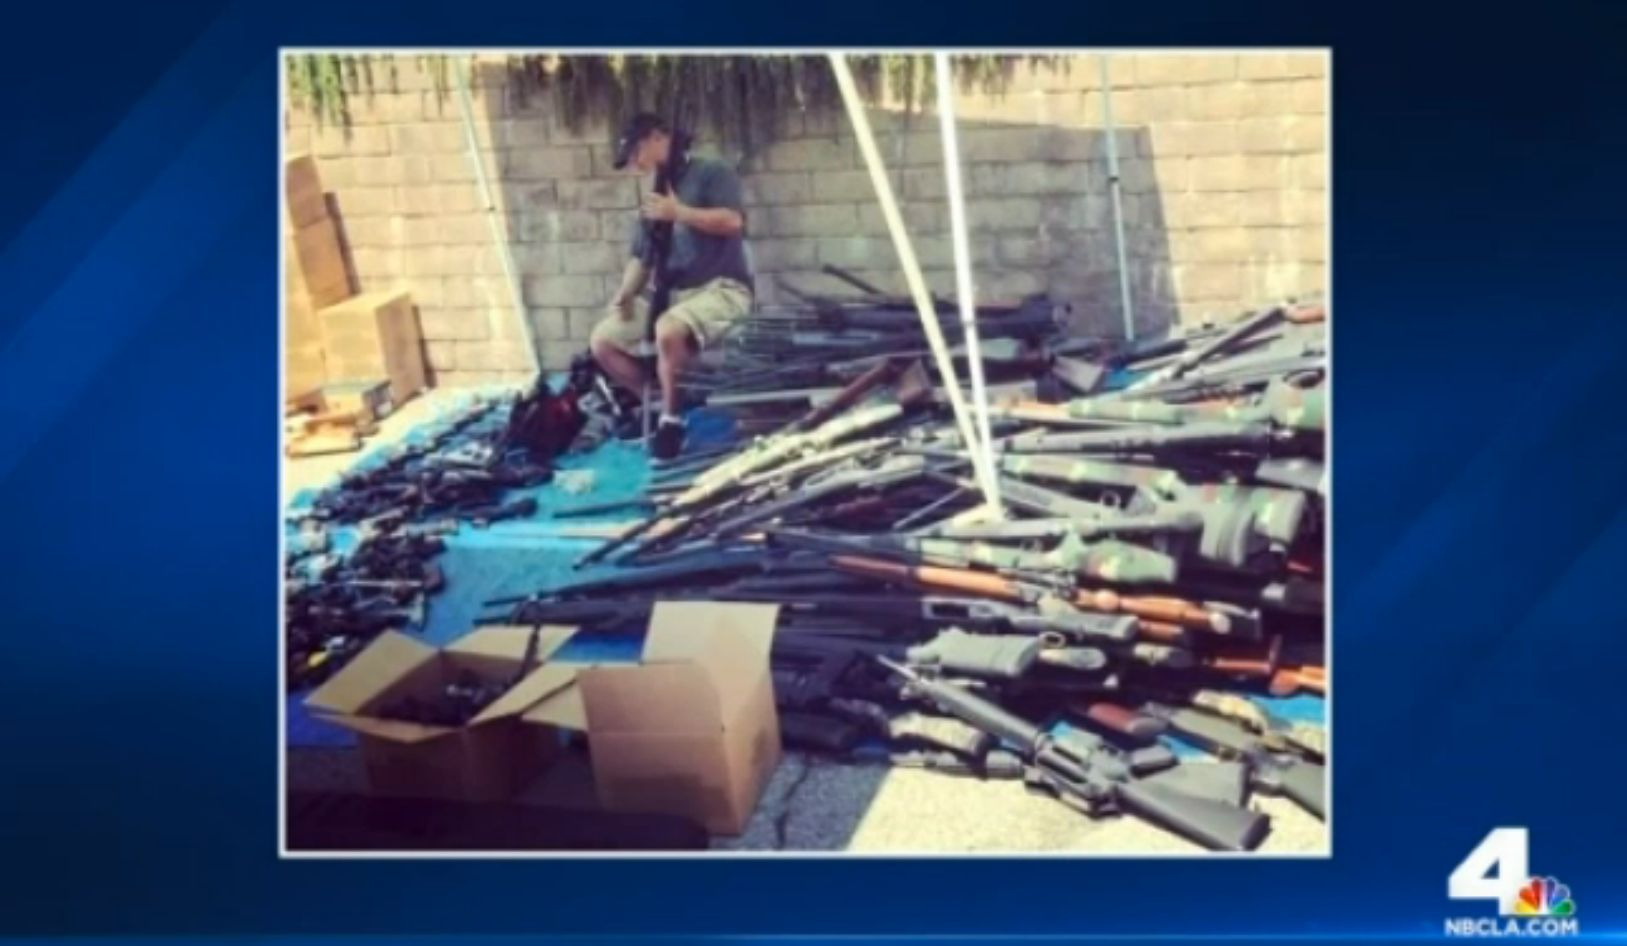 LAPD Investigating Man's Death Find Huge Arsenal In His Home